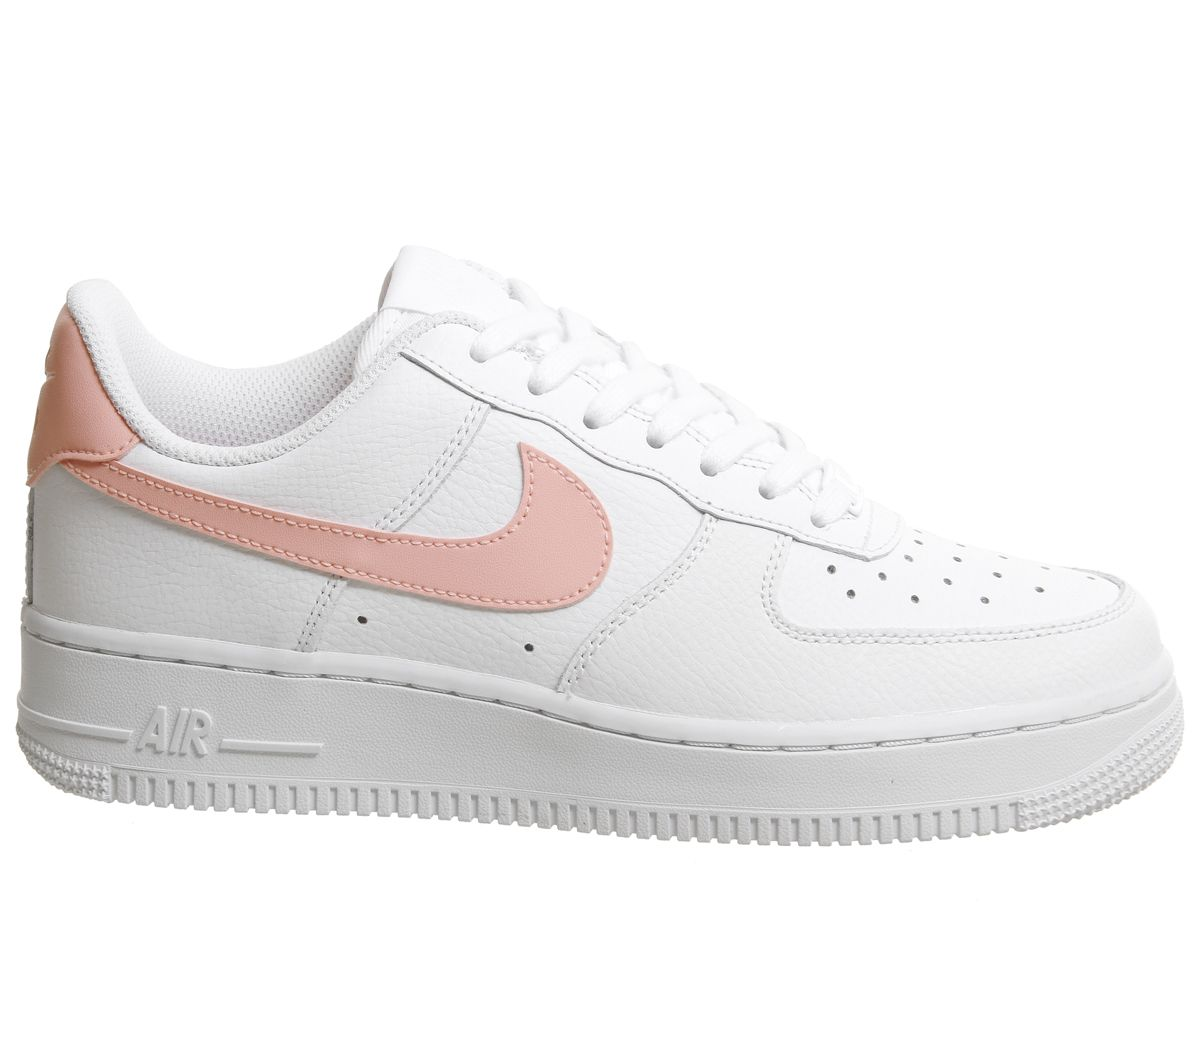 bf7cd430ec8 The new Nike Air Force 1  07 Patent White Oracle Pink women s shoe is is one  of the top Nike releases of the summer in 2018.